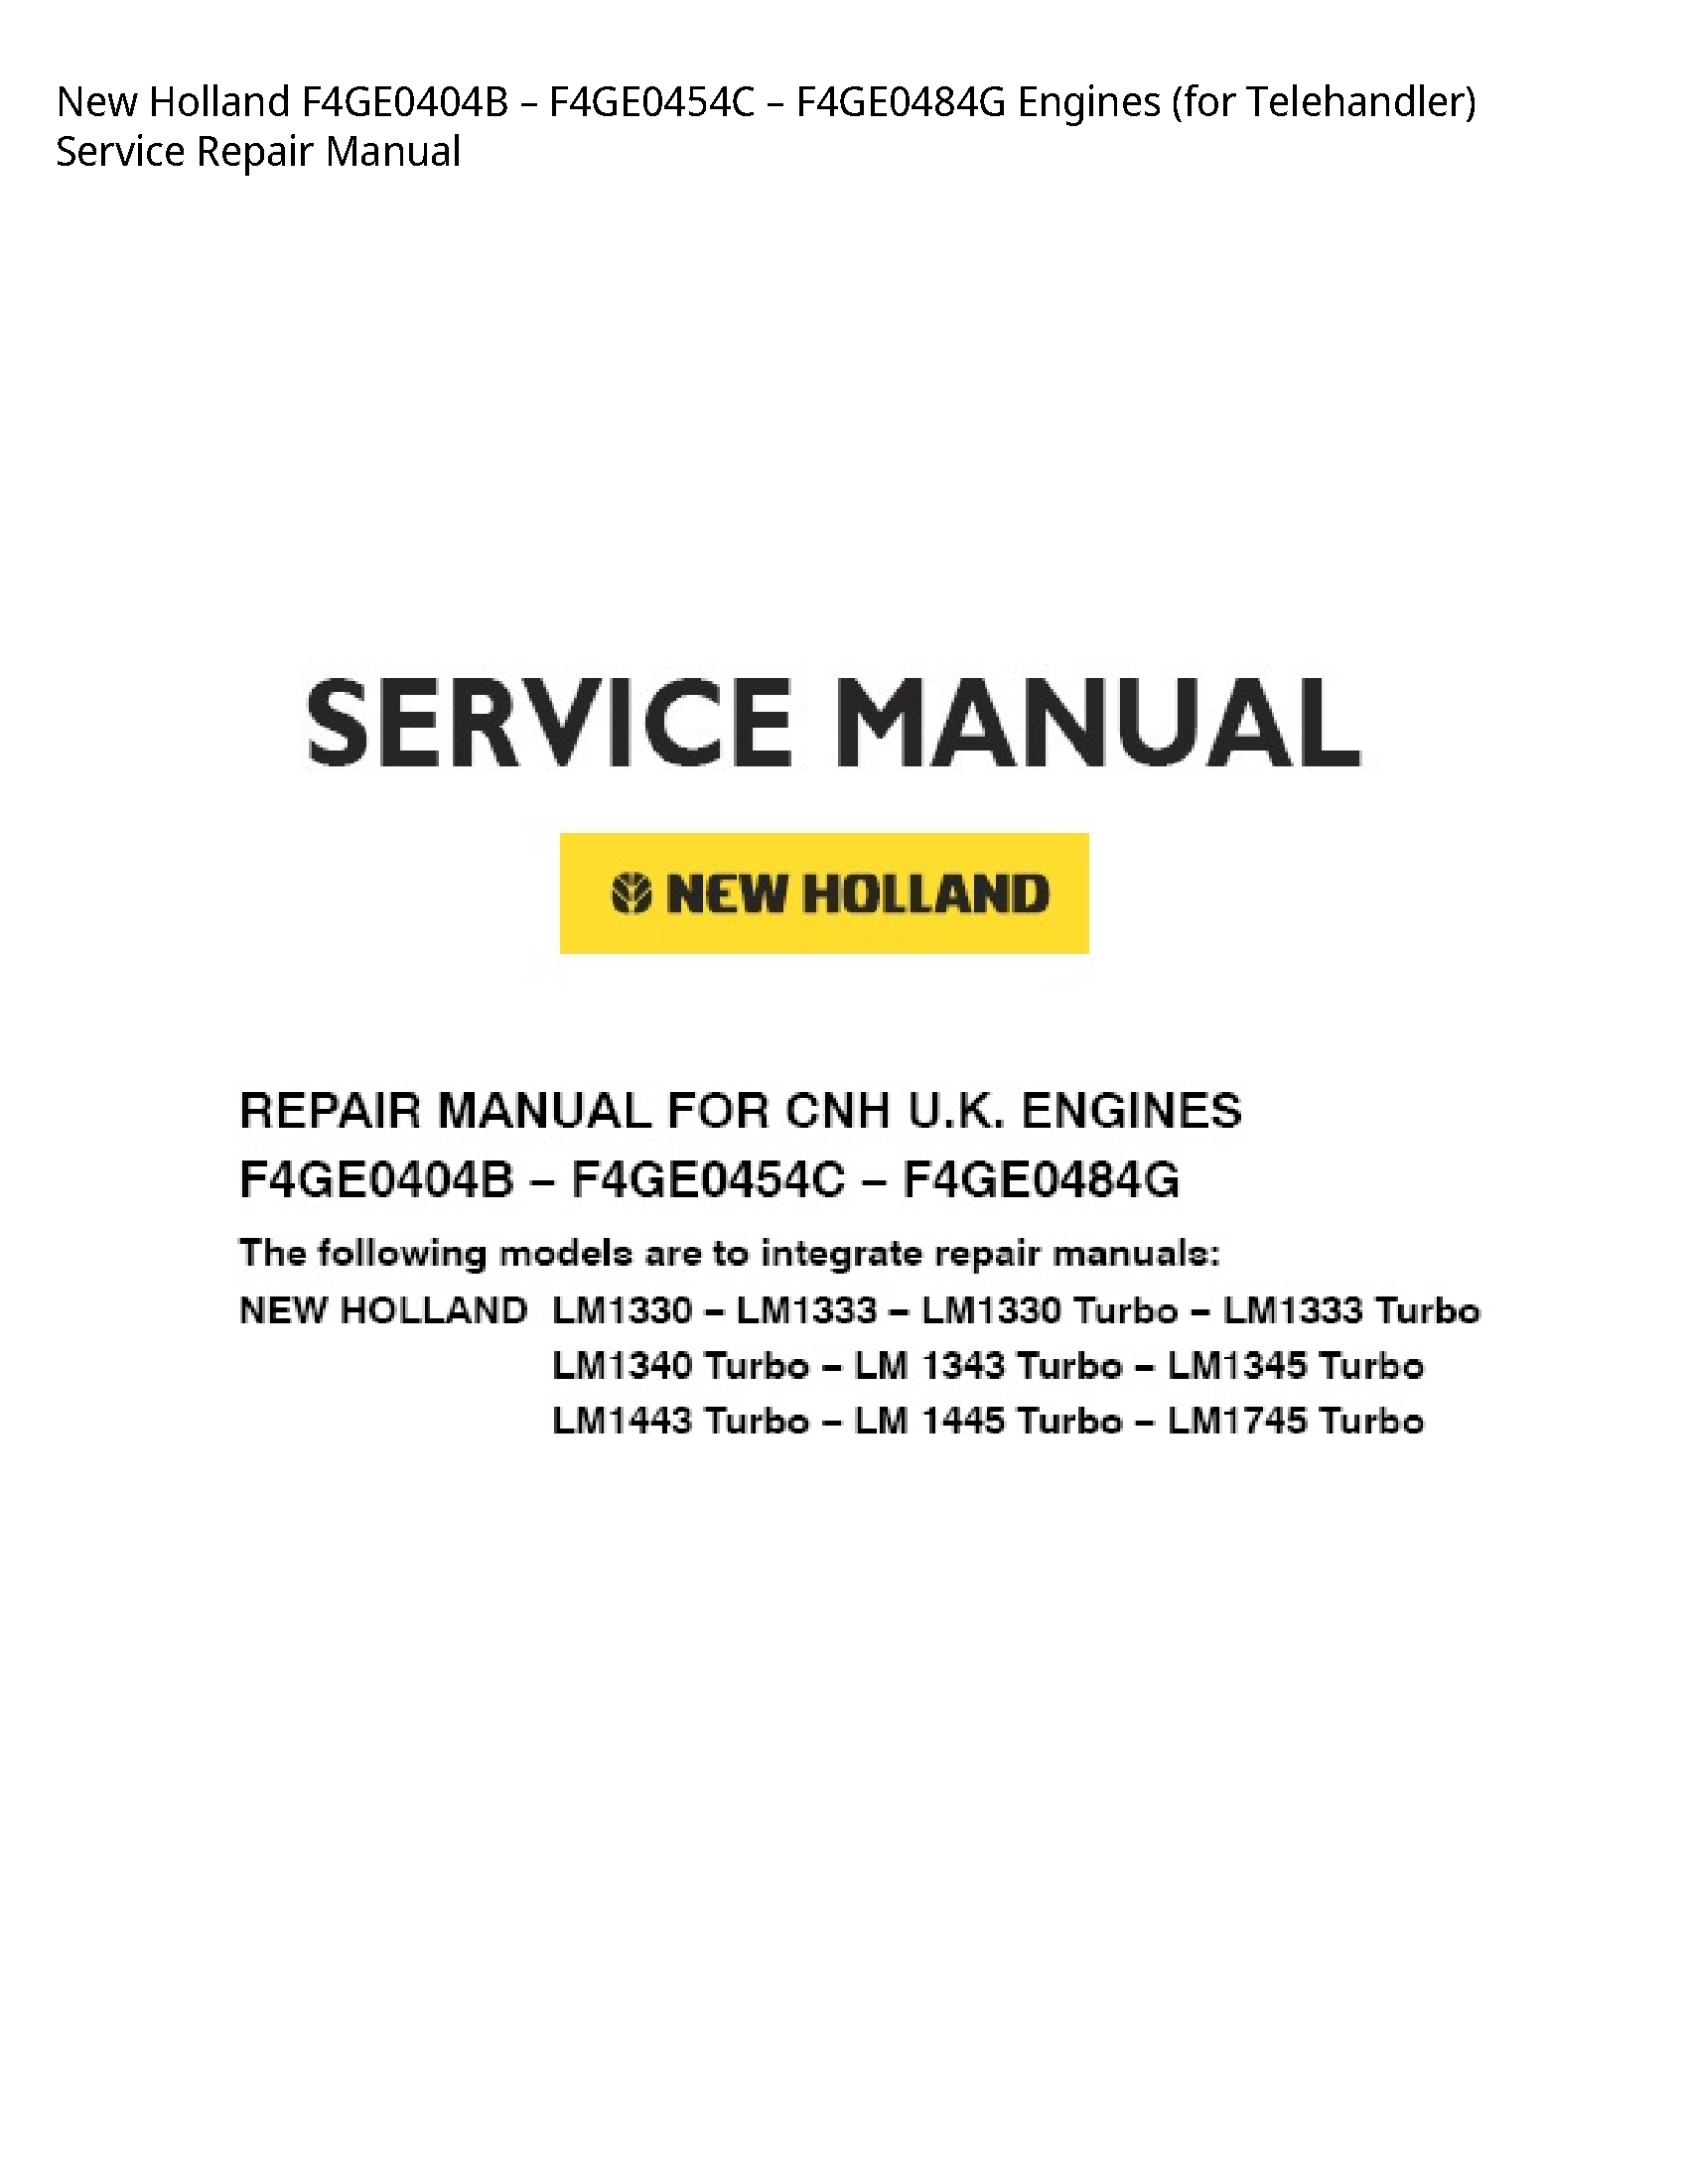 New Holland F4GE0404B Engines (for Telehandler) manual